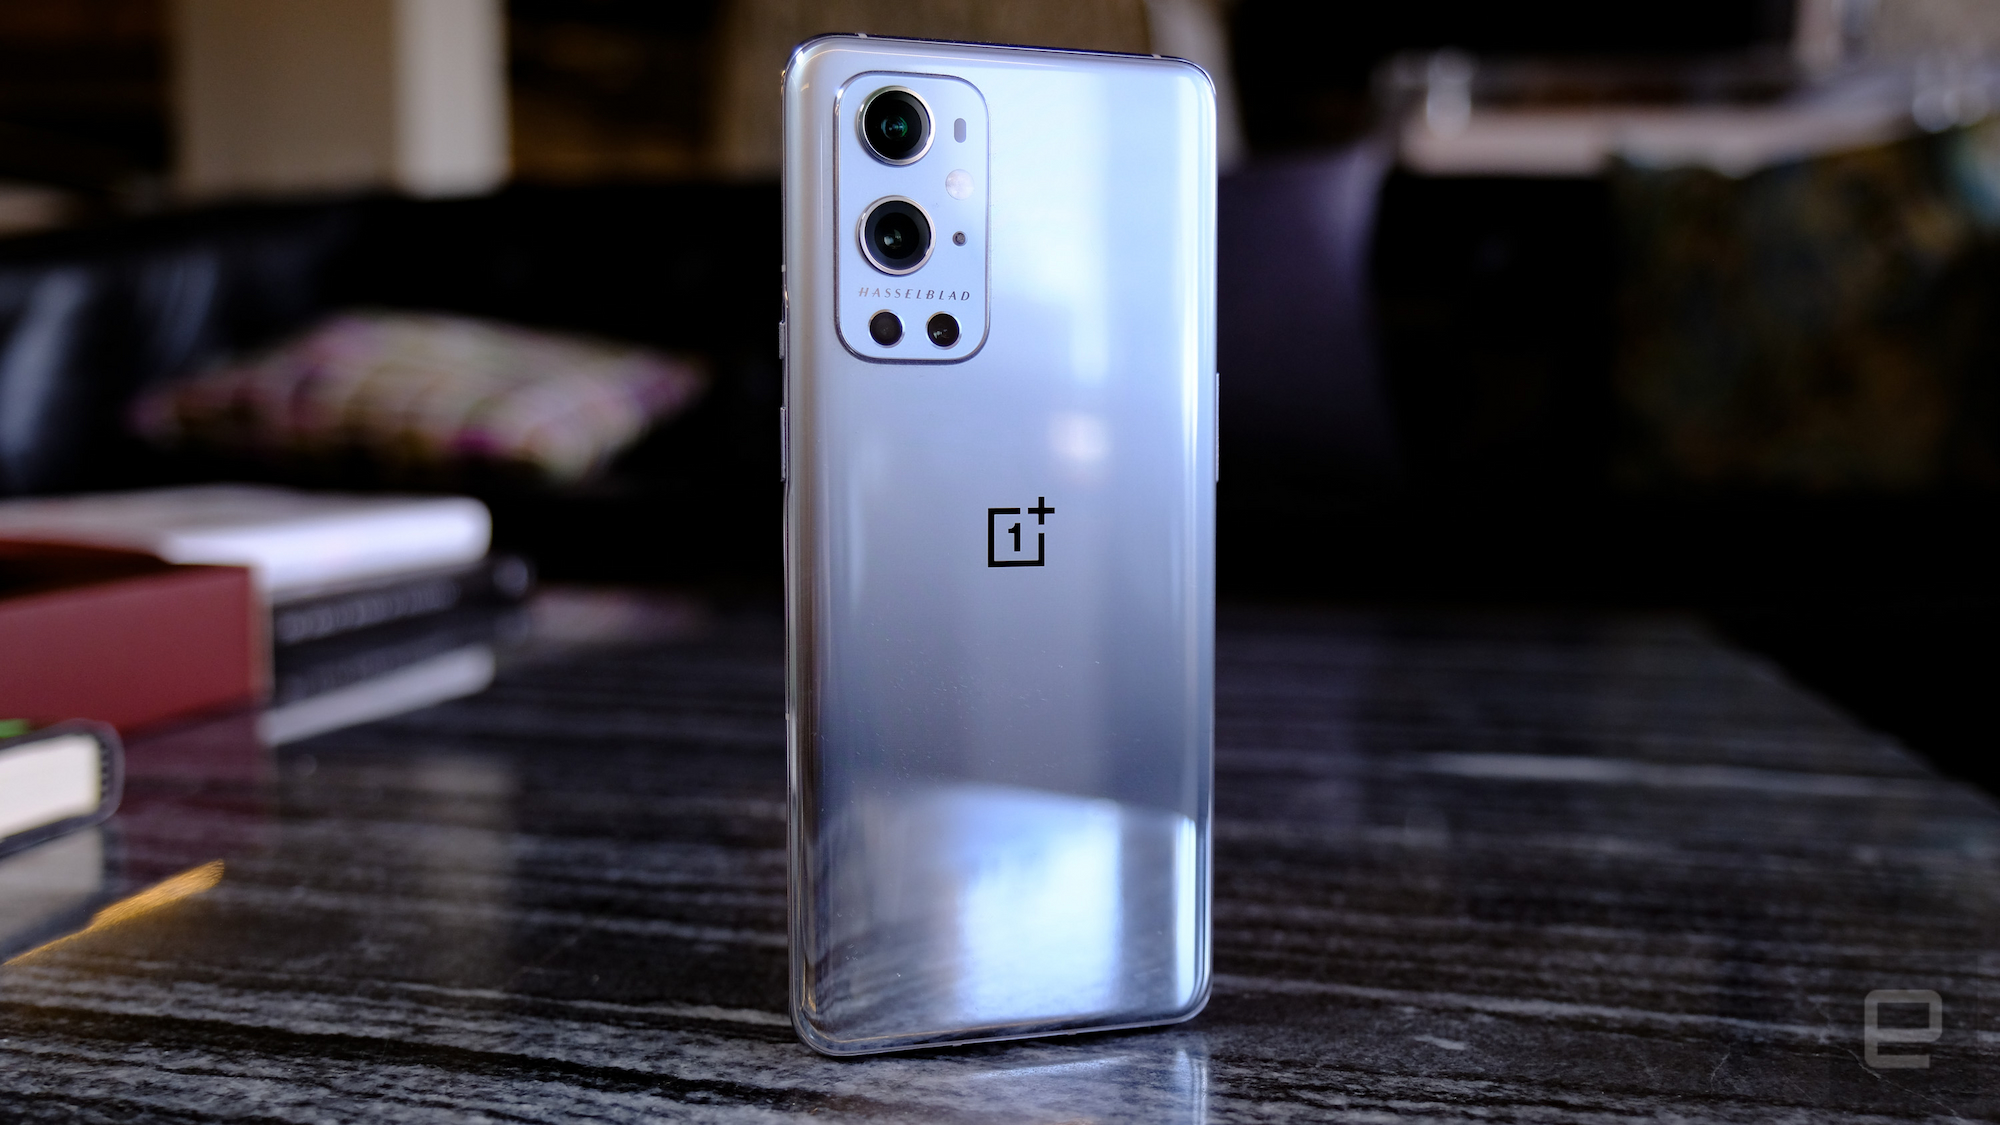 OnePlus is merging with Oppo   Engadget